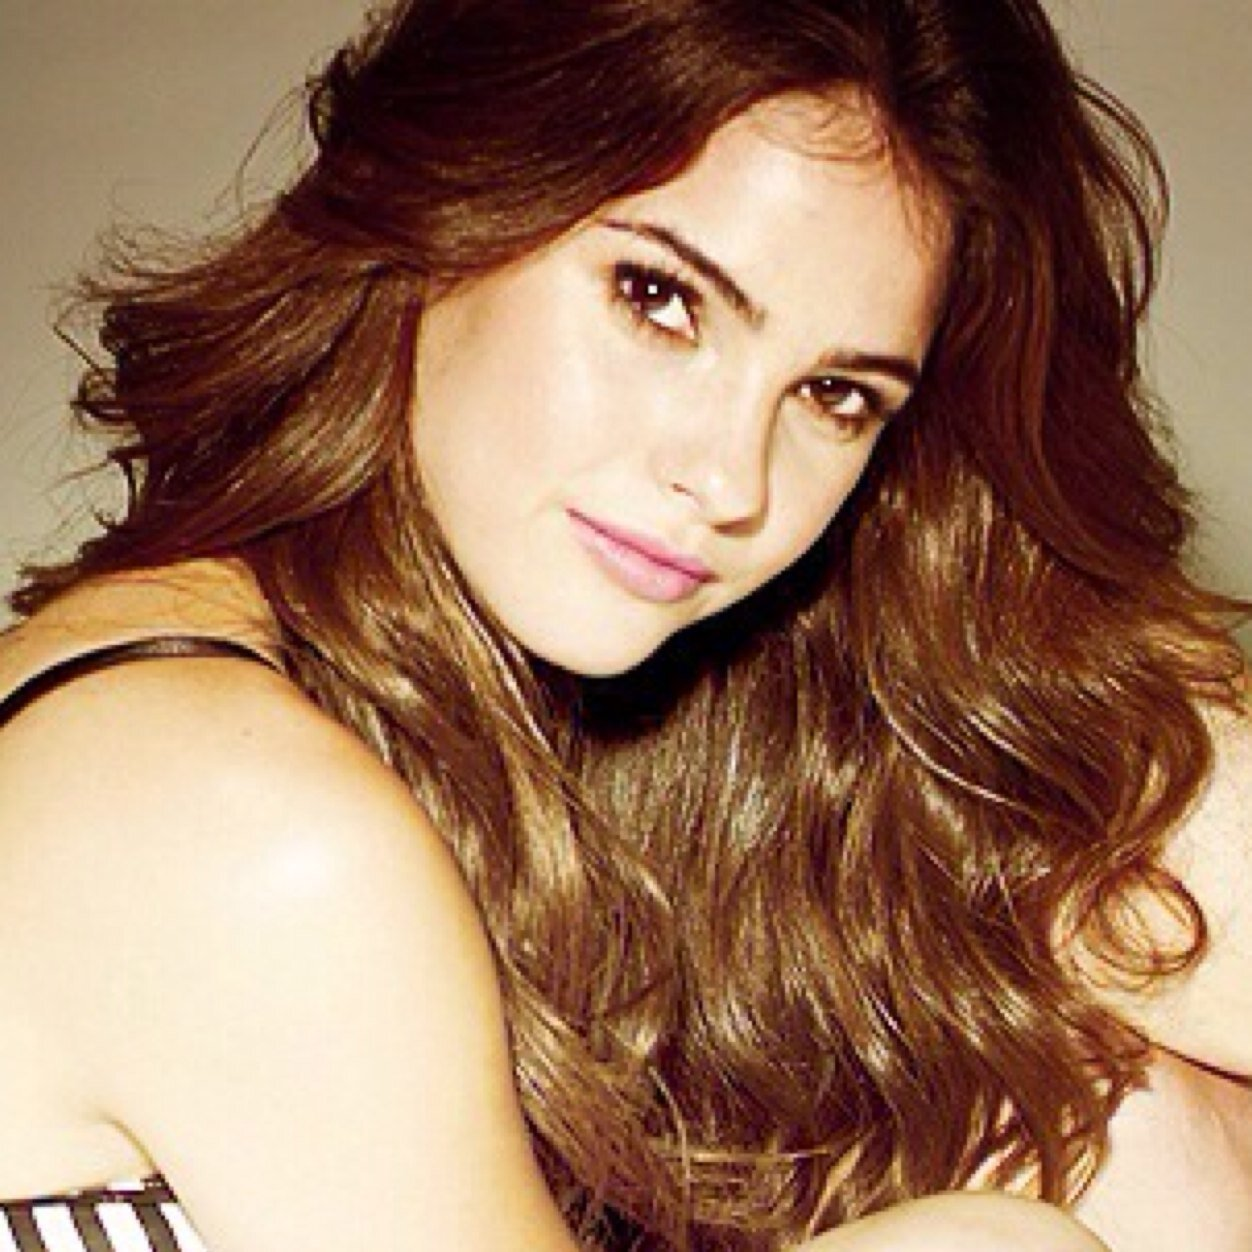 Watch Shelley Hennig born January 2, 1987 (age 31) video